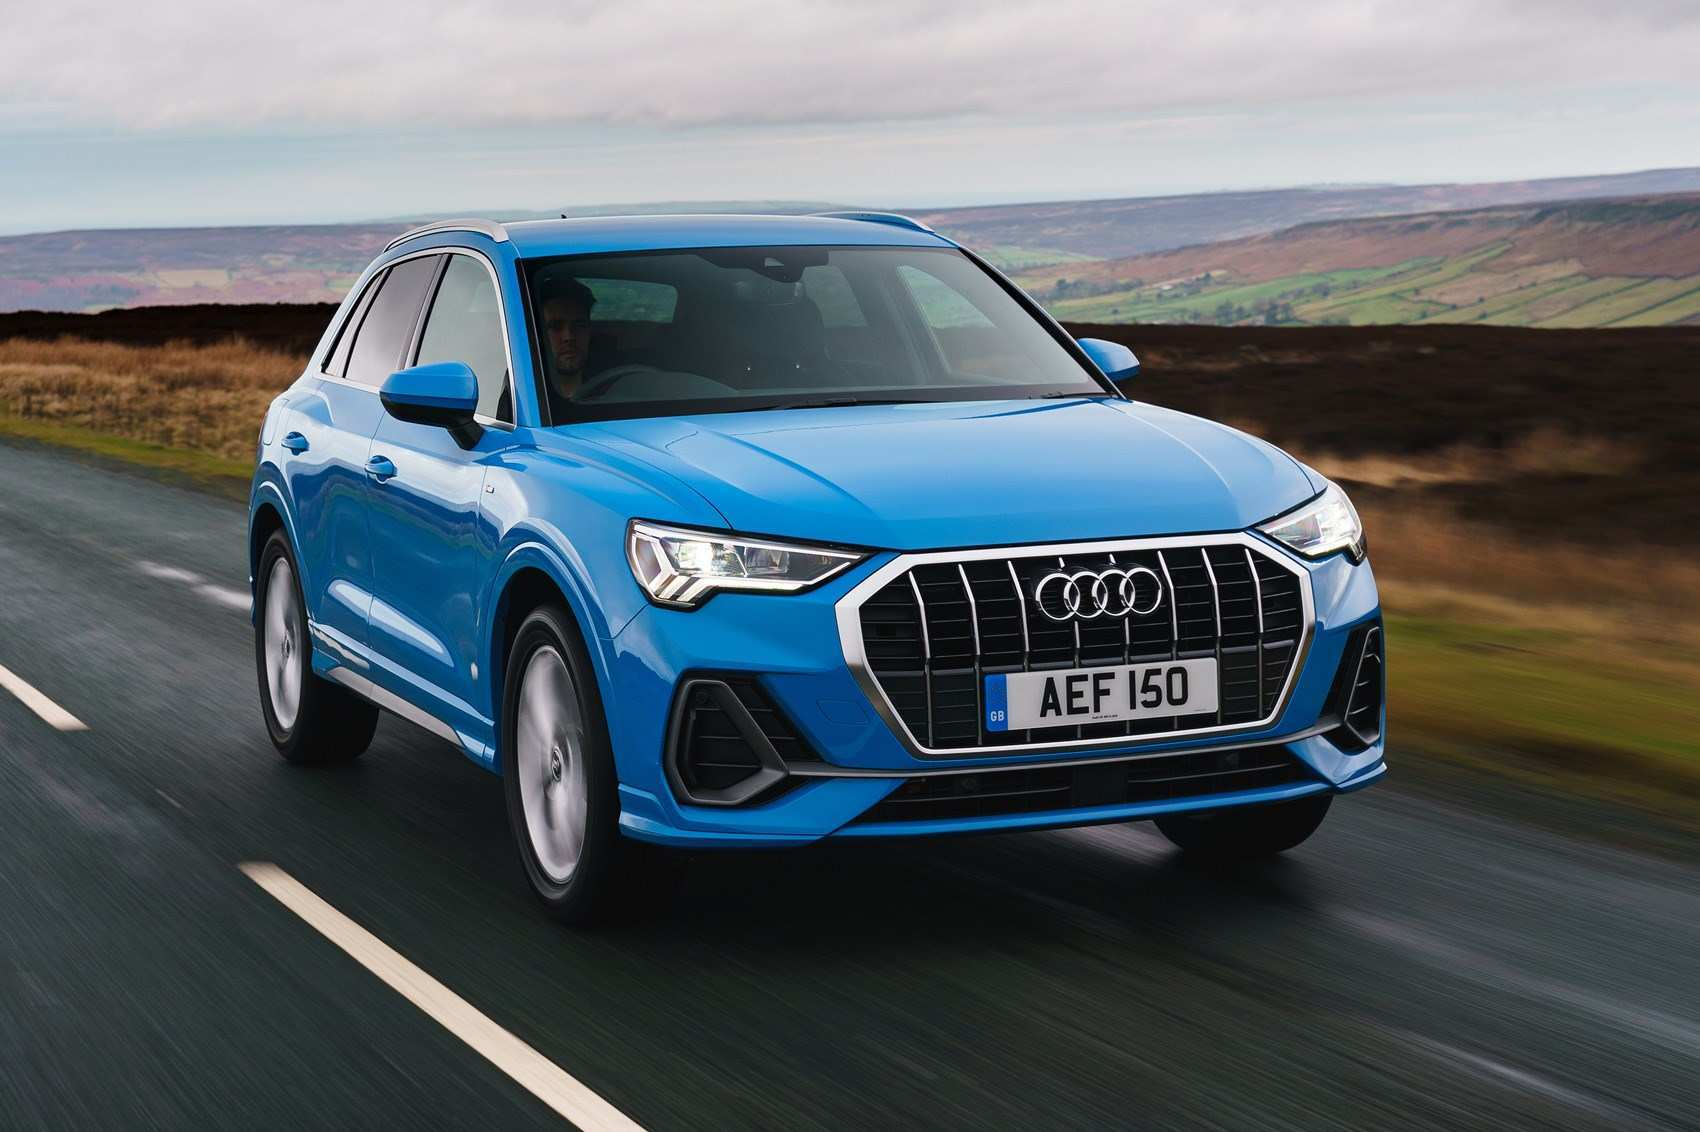 36 Gallery of New Release Date For 2019 Audi Q3 New Review Redesign with New Release Date For 2019 Audi Q3 New Review